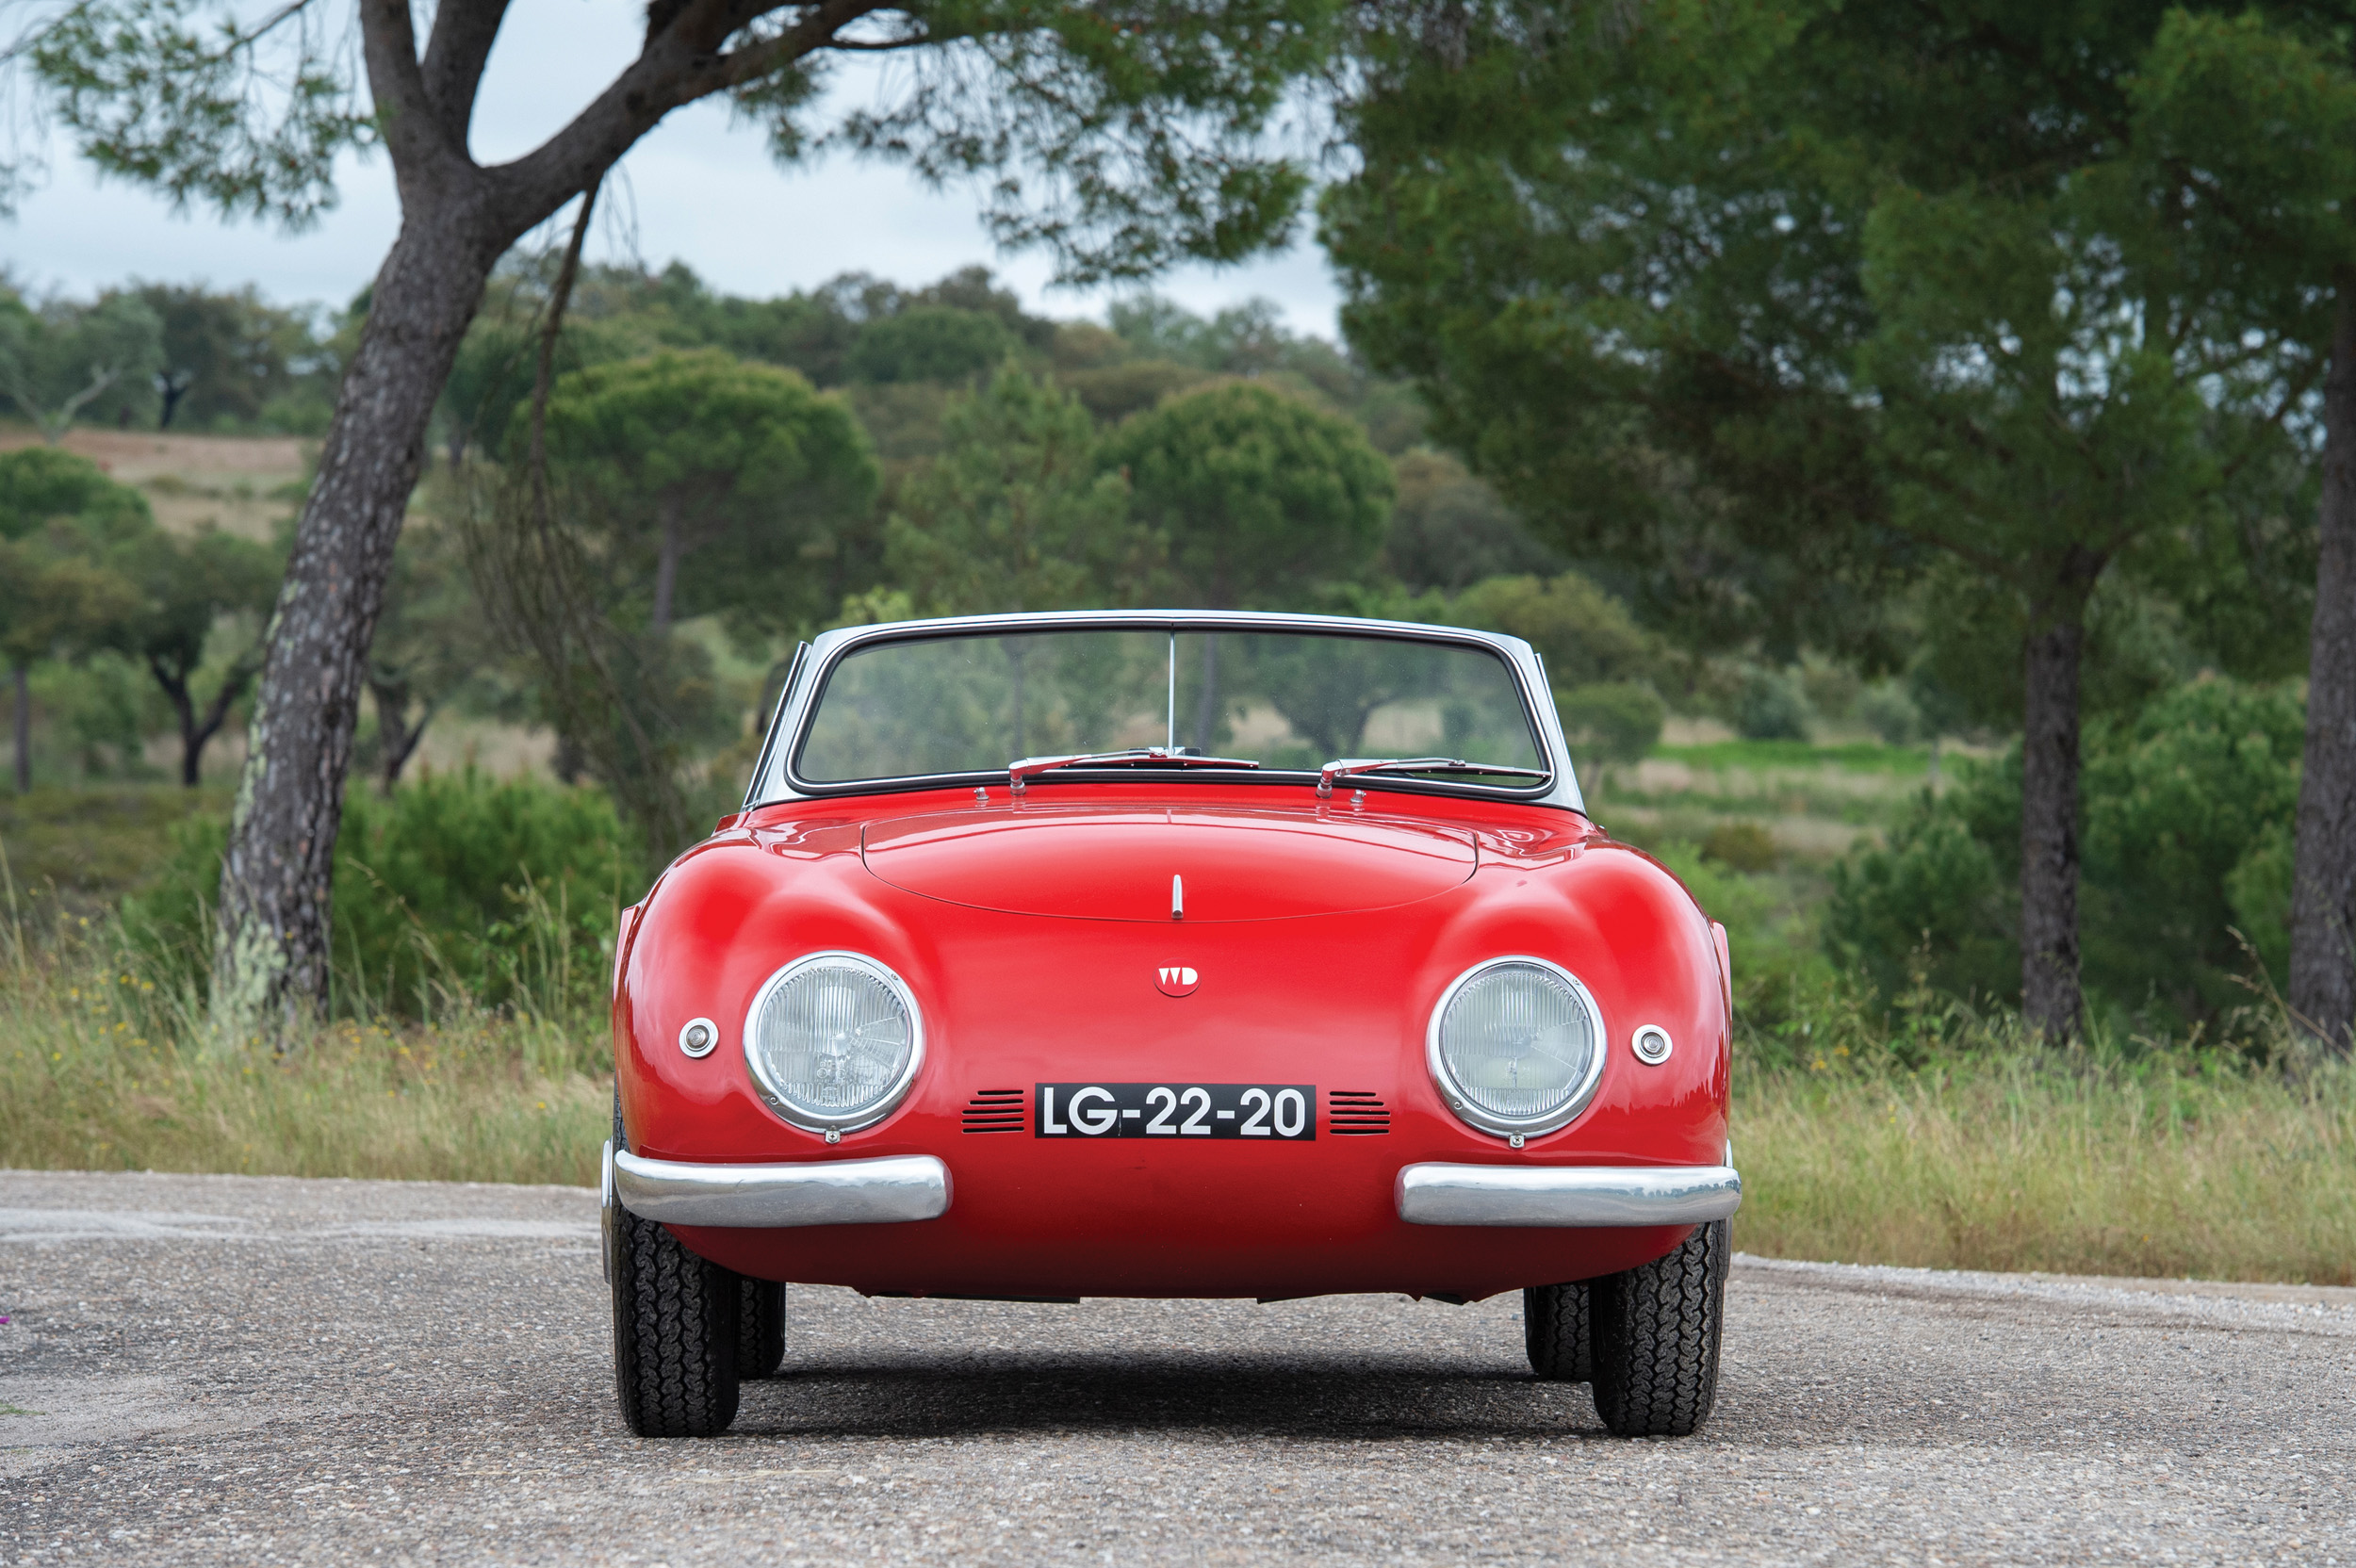 The Sáragga Collection - 1955 WD Denzel 1300 (Credit- Tom Wood ©2019 Courtesy of RM Sotheby's)